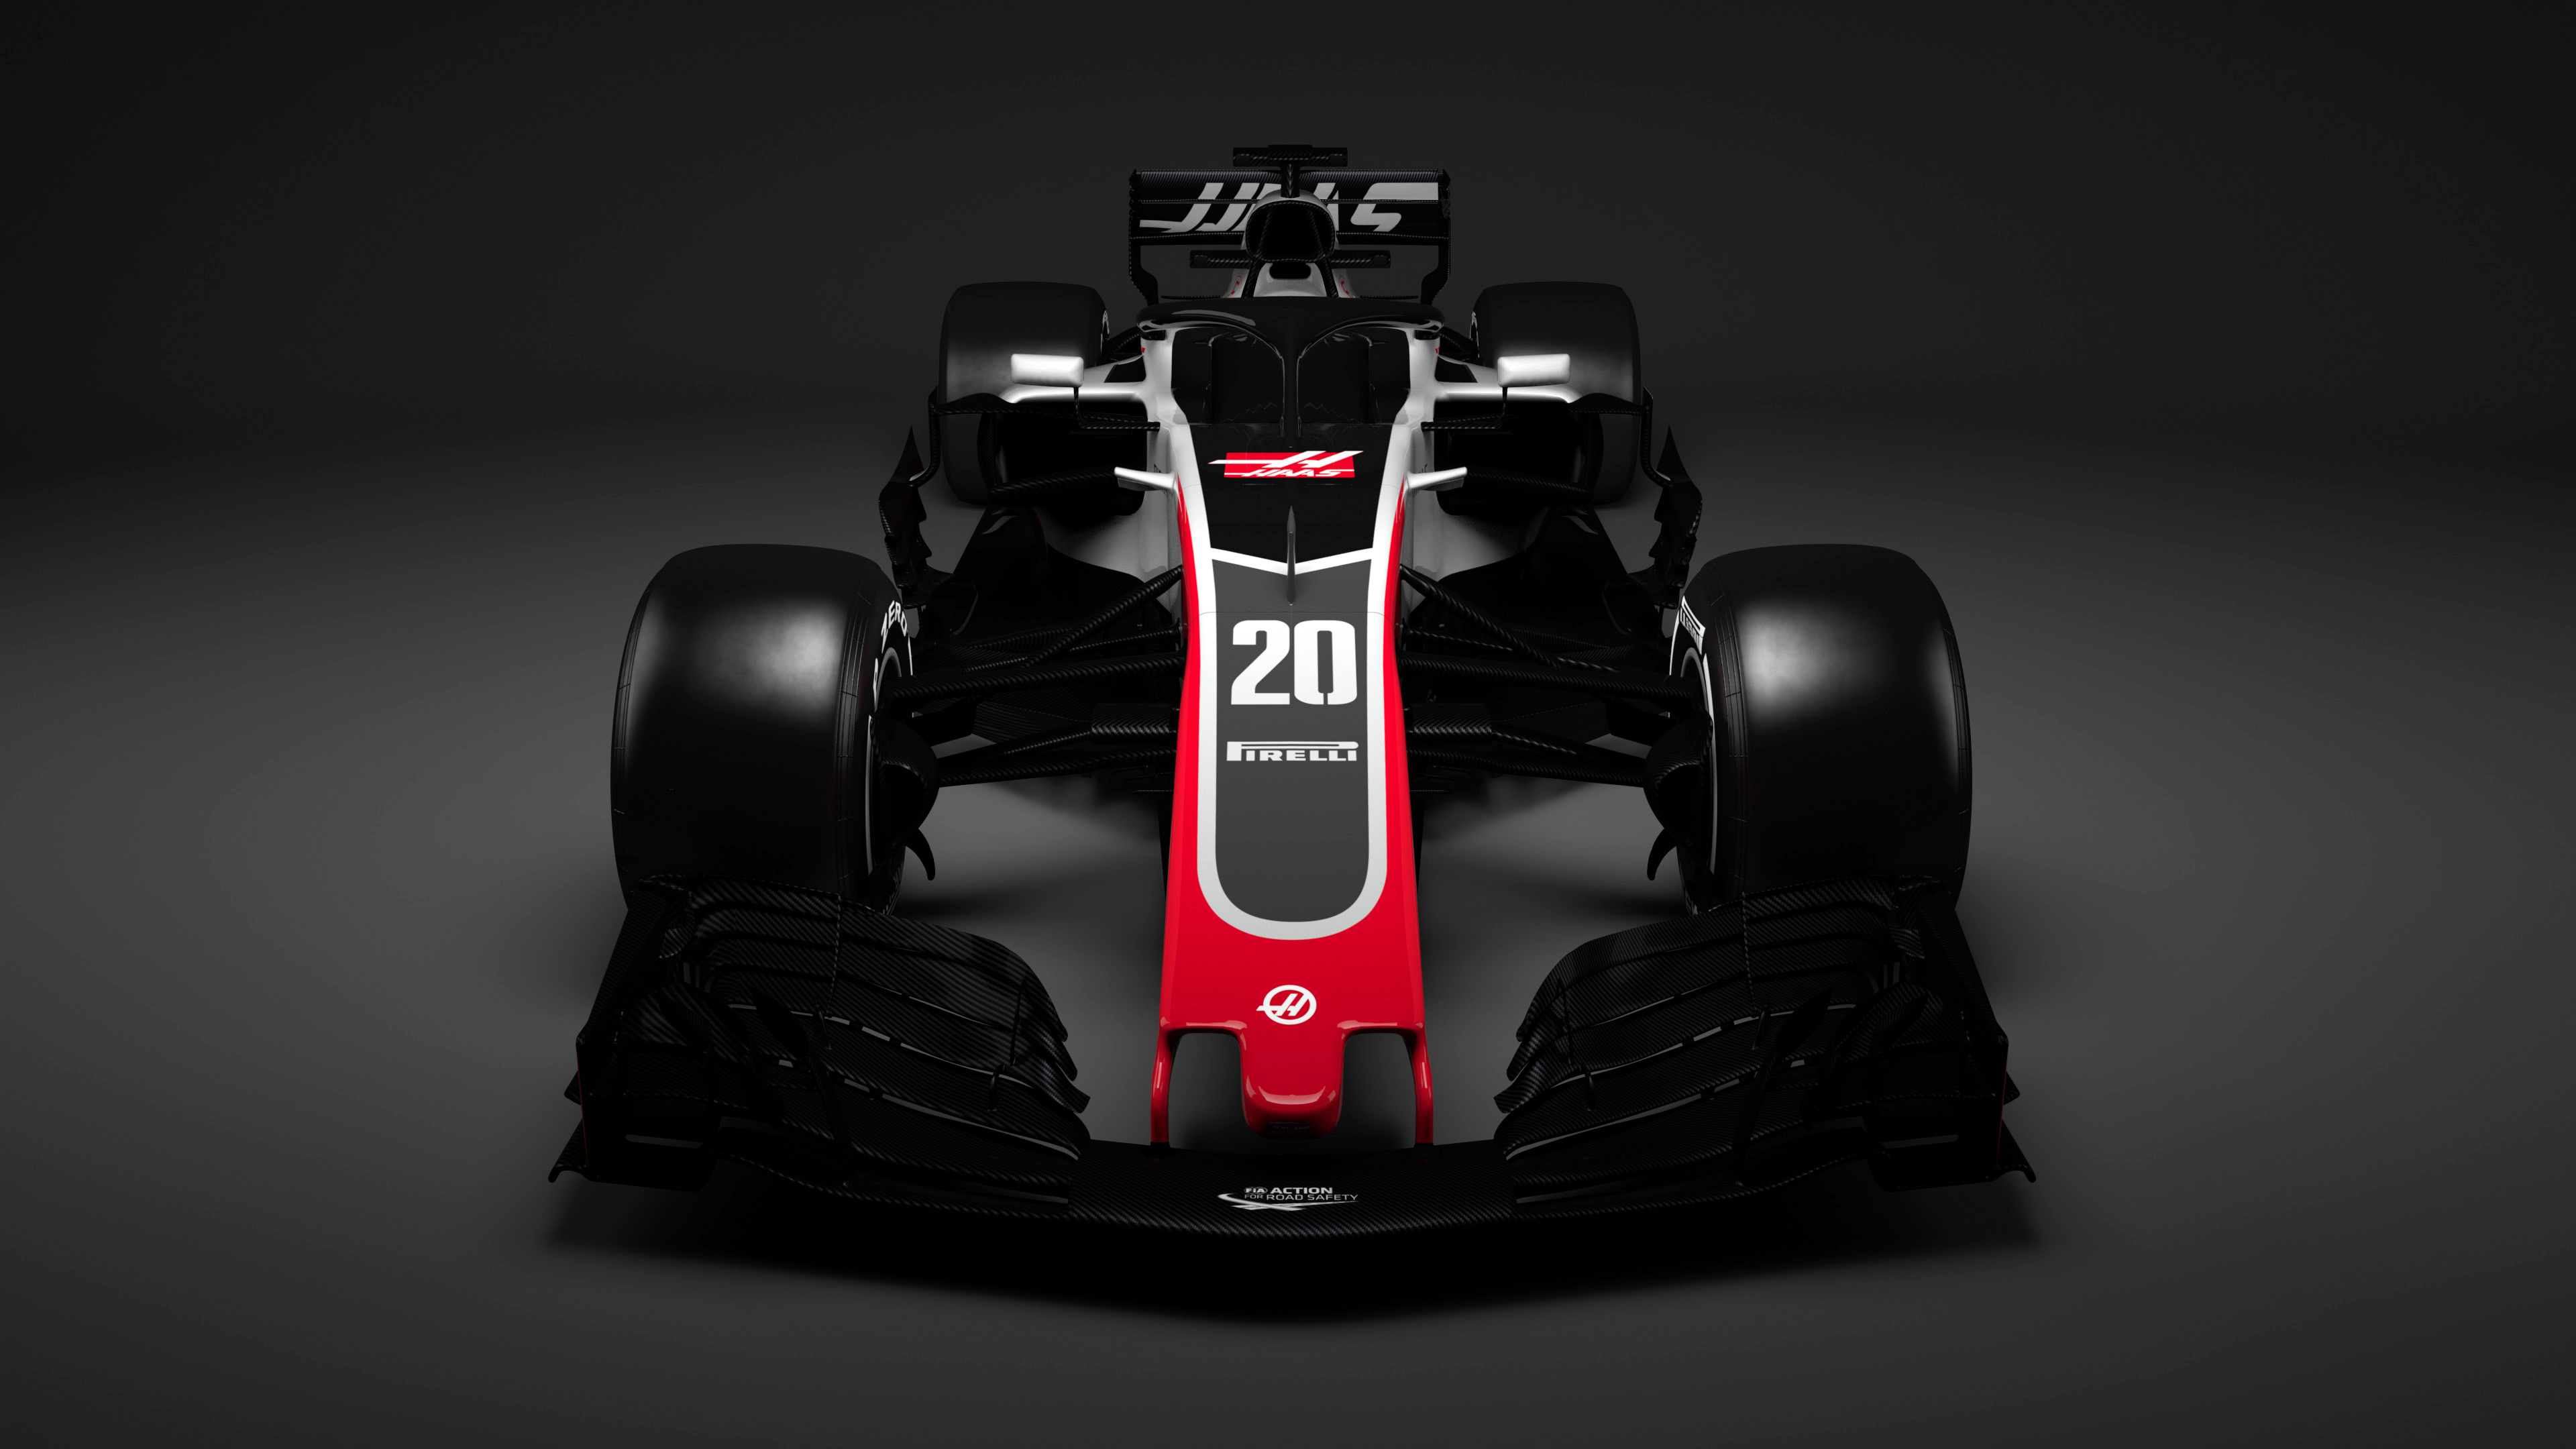 Haas F1 Formula 1 Car 4K Wallpaper HD Car Wallpapers ID 9598 3840x2160